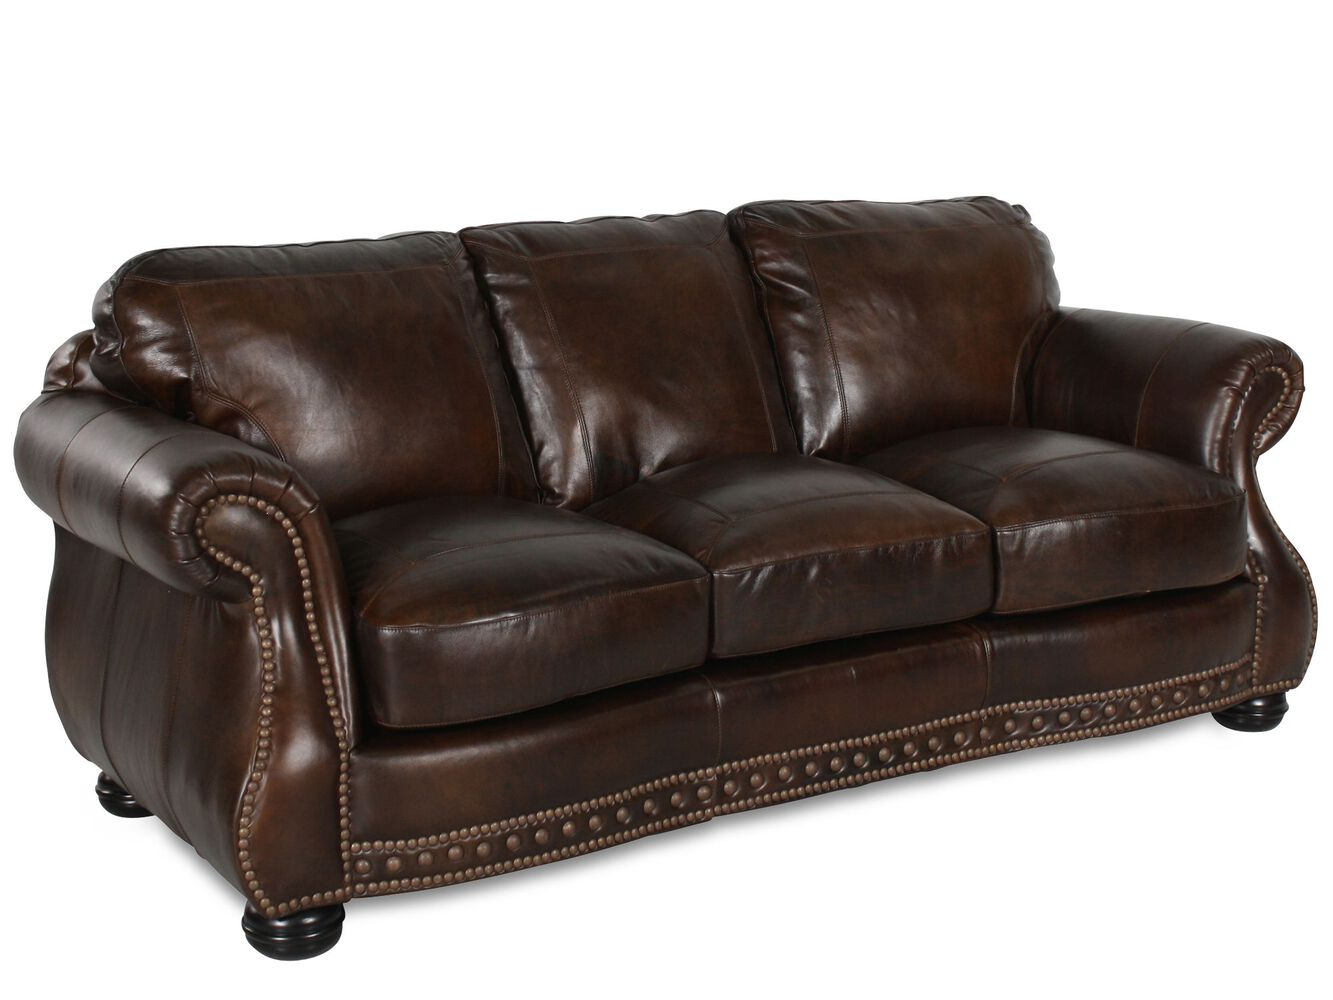 Traditional leather 88 sofa in brown mathis brothers for Traditional leather sofas furniture